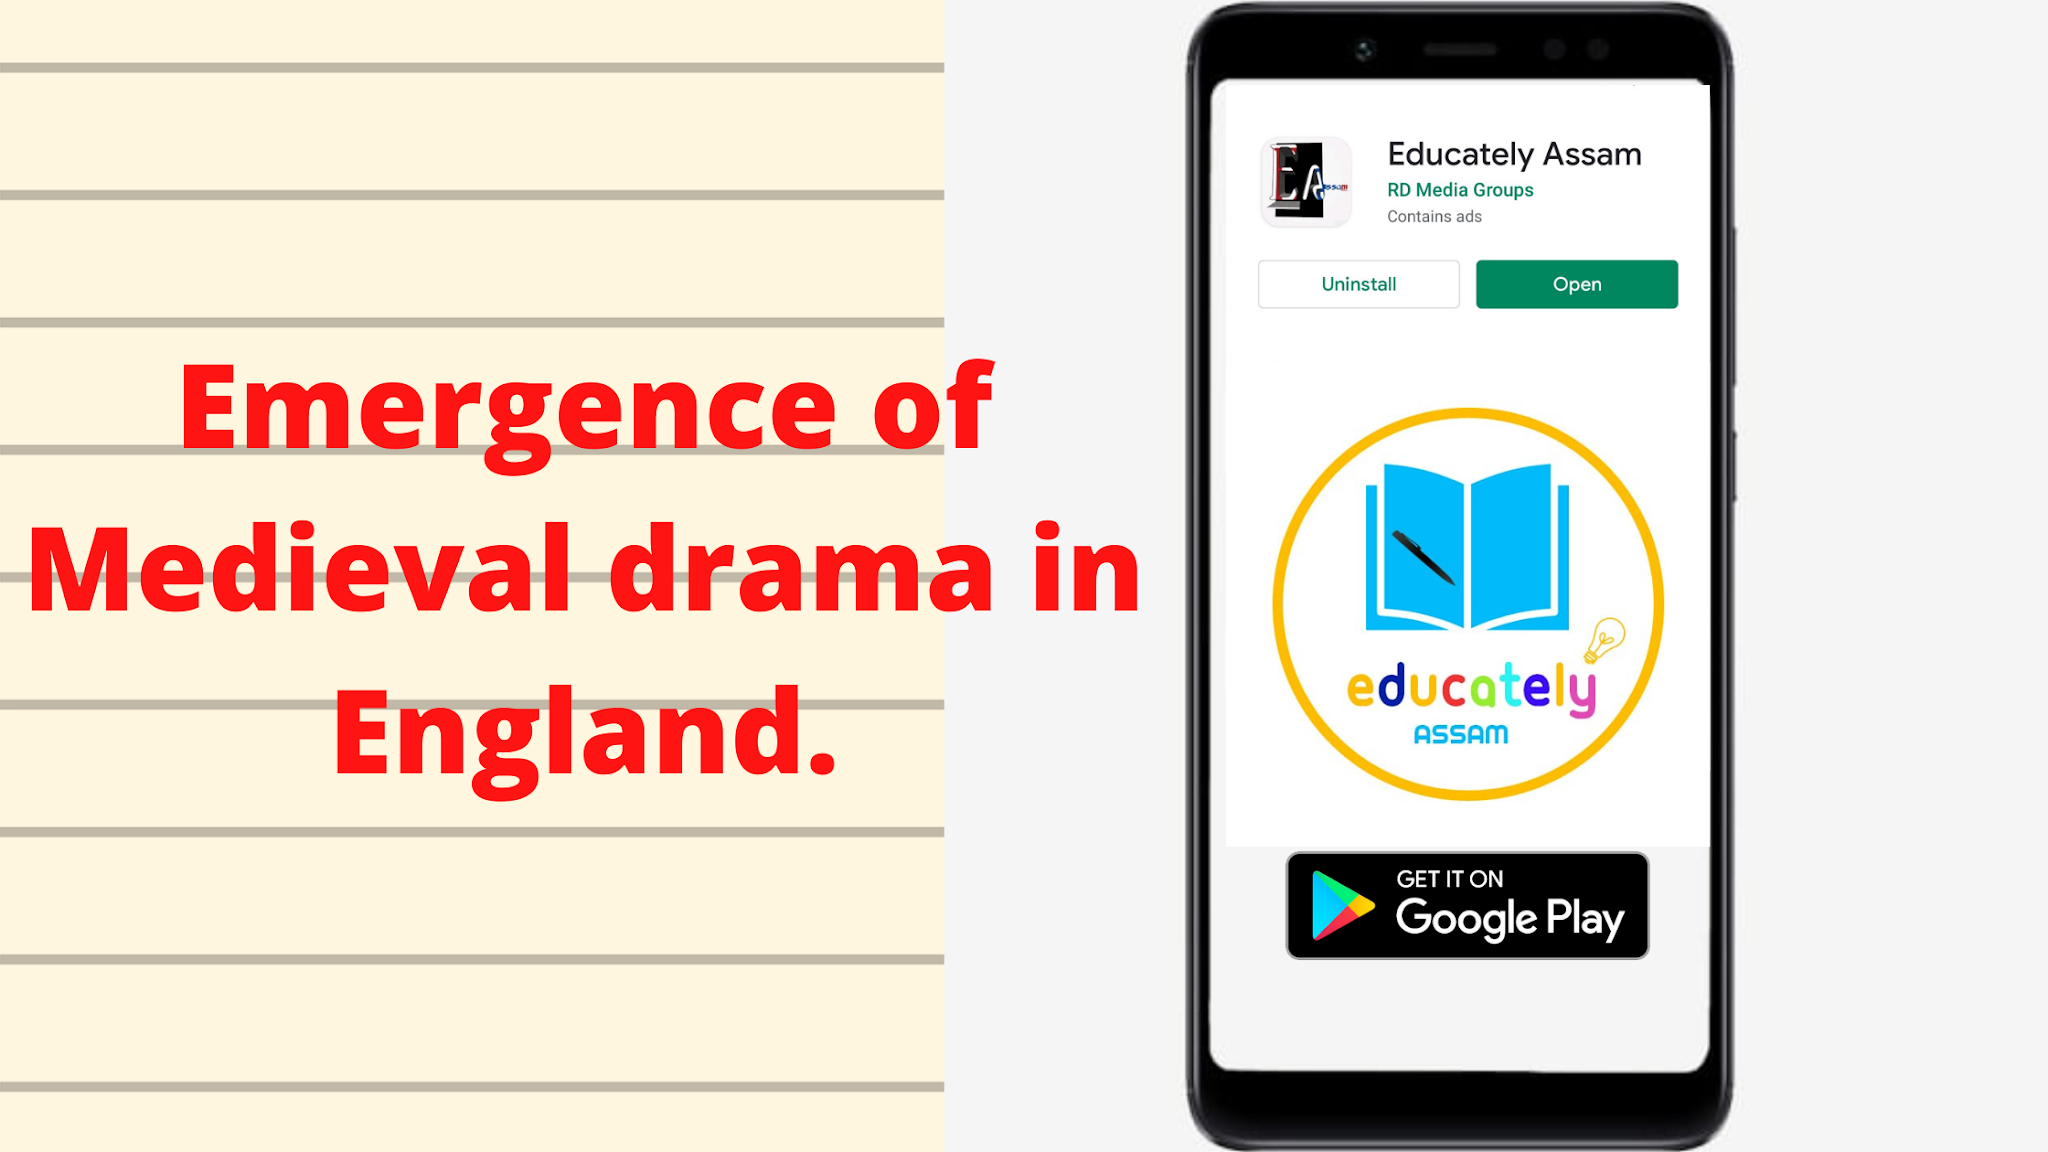 Write a note on the emergence of medieval drama in England